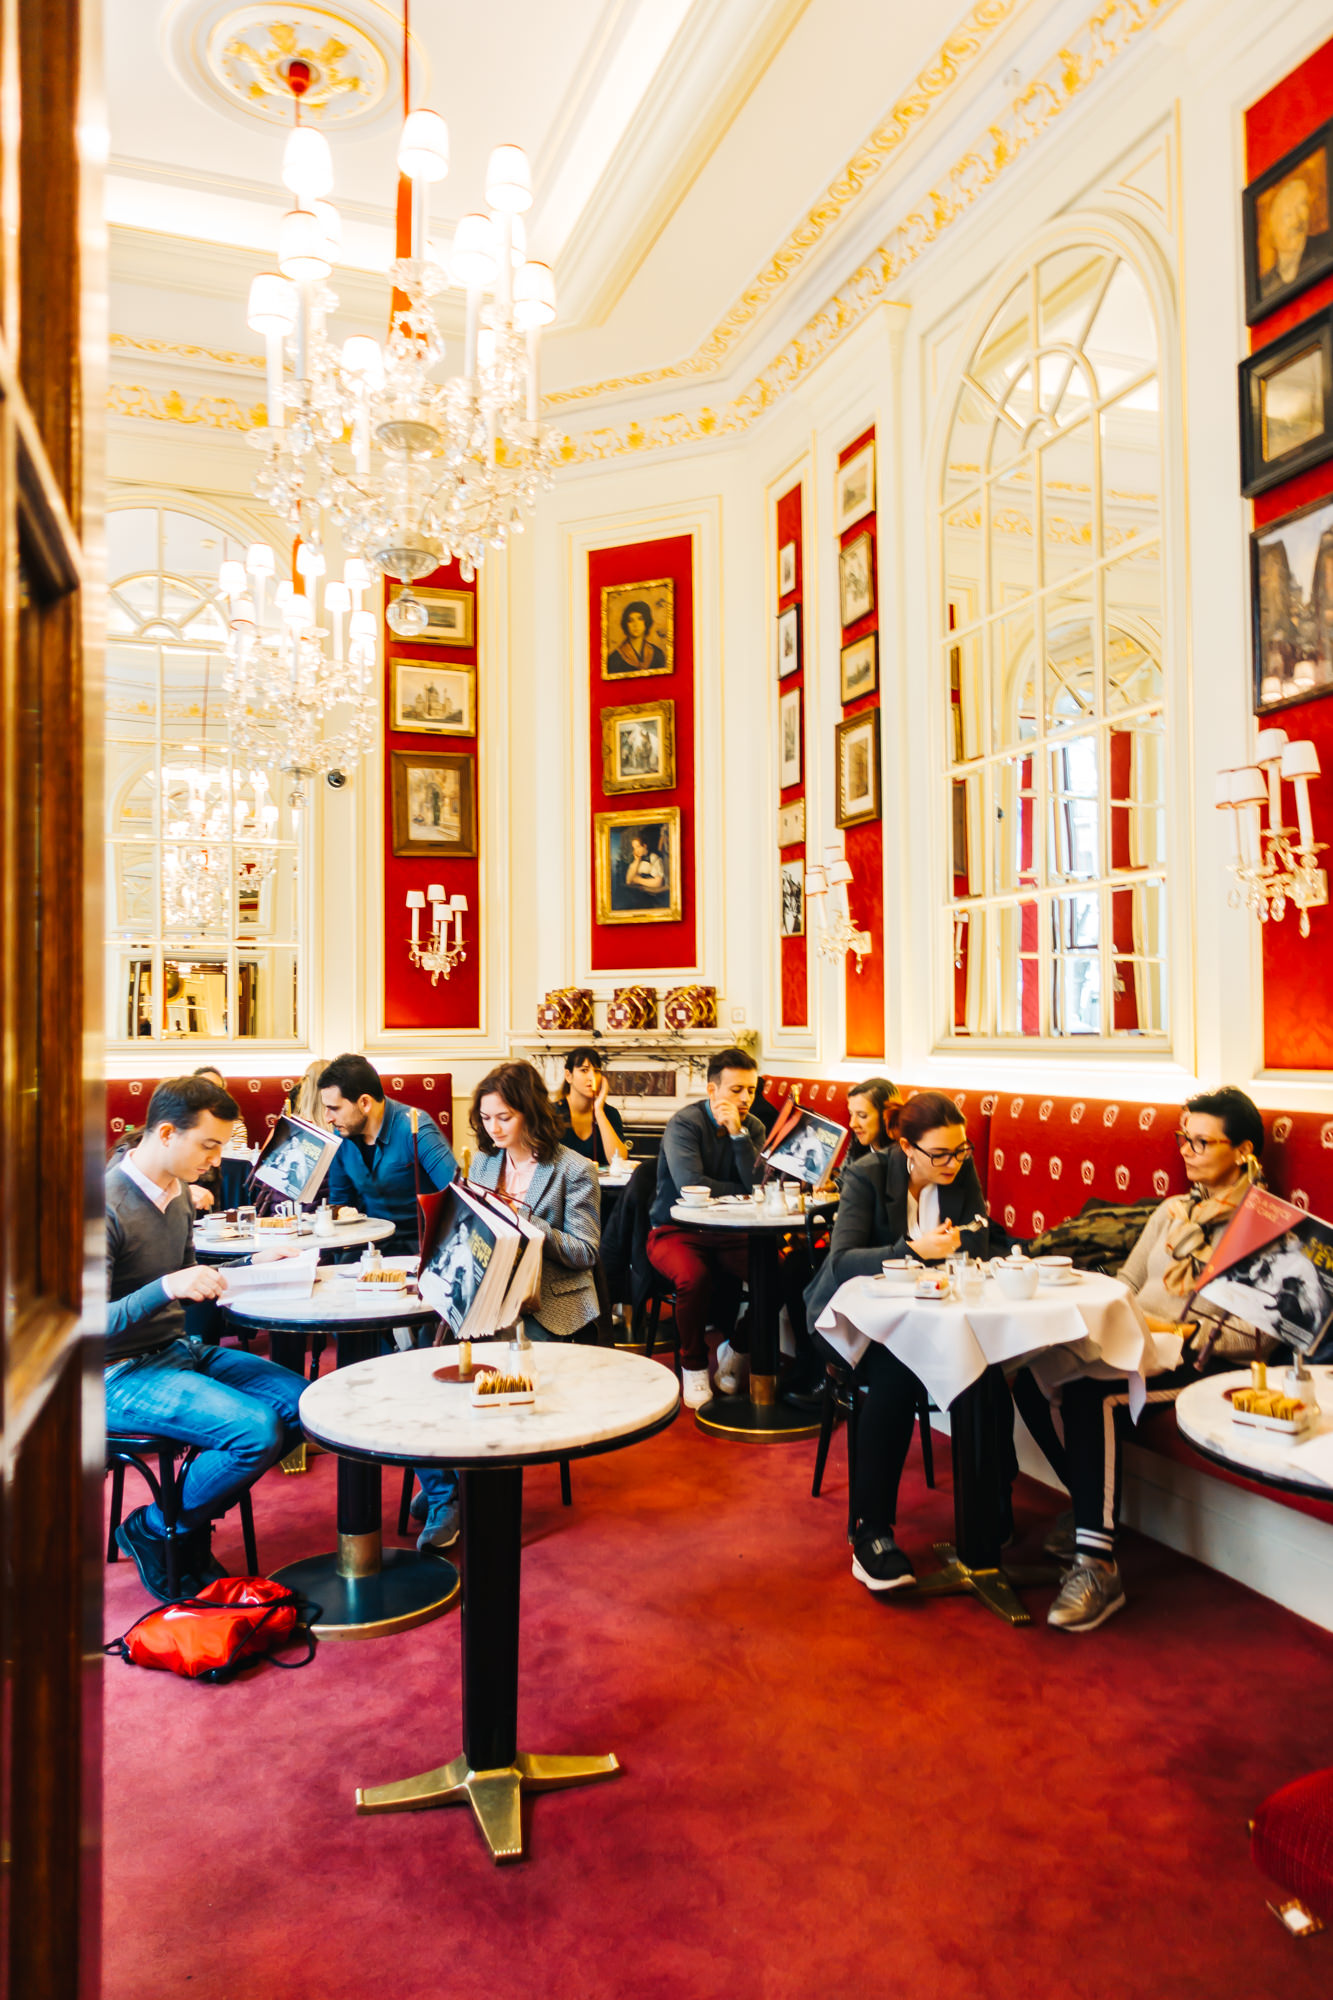 The famous Cafe Sacher